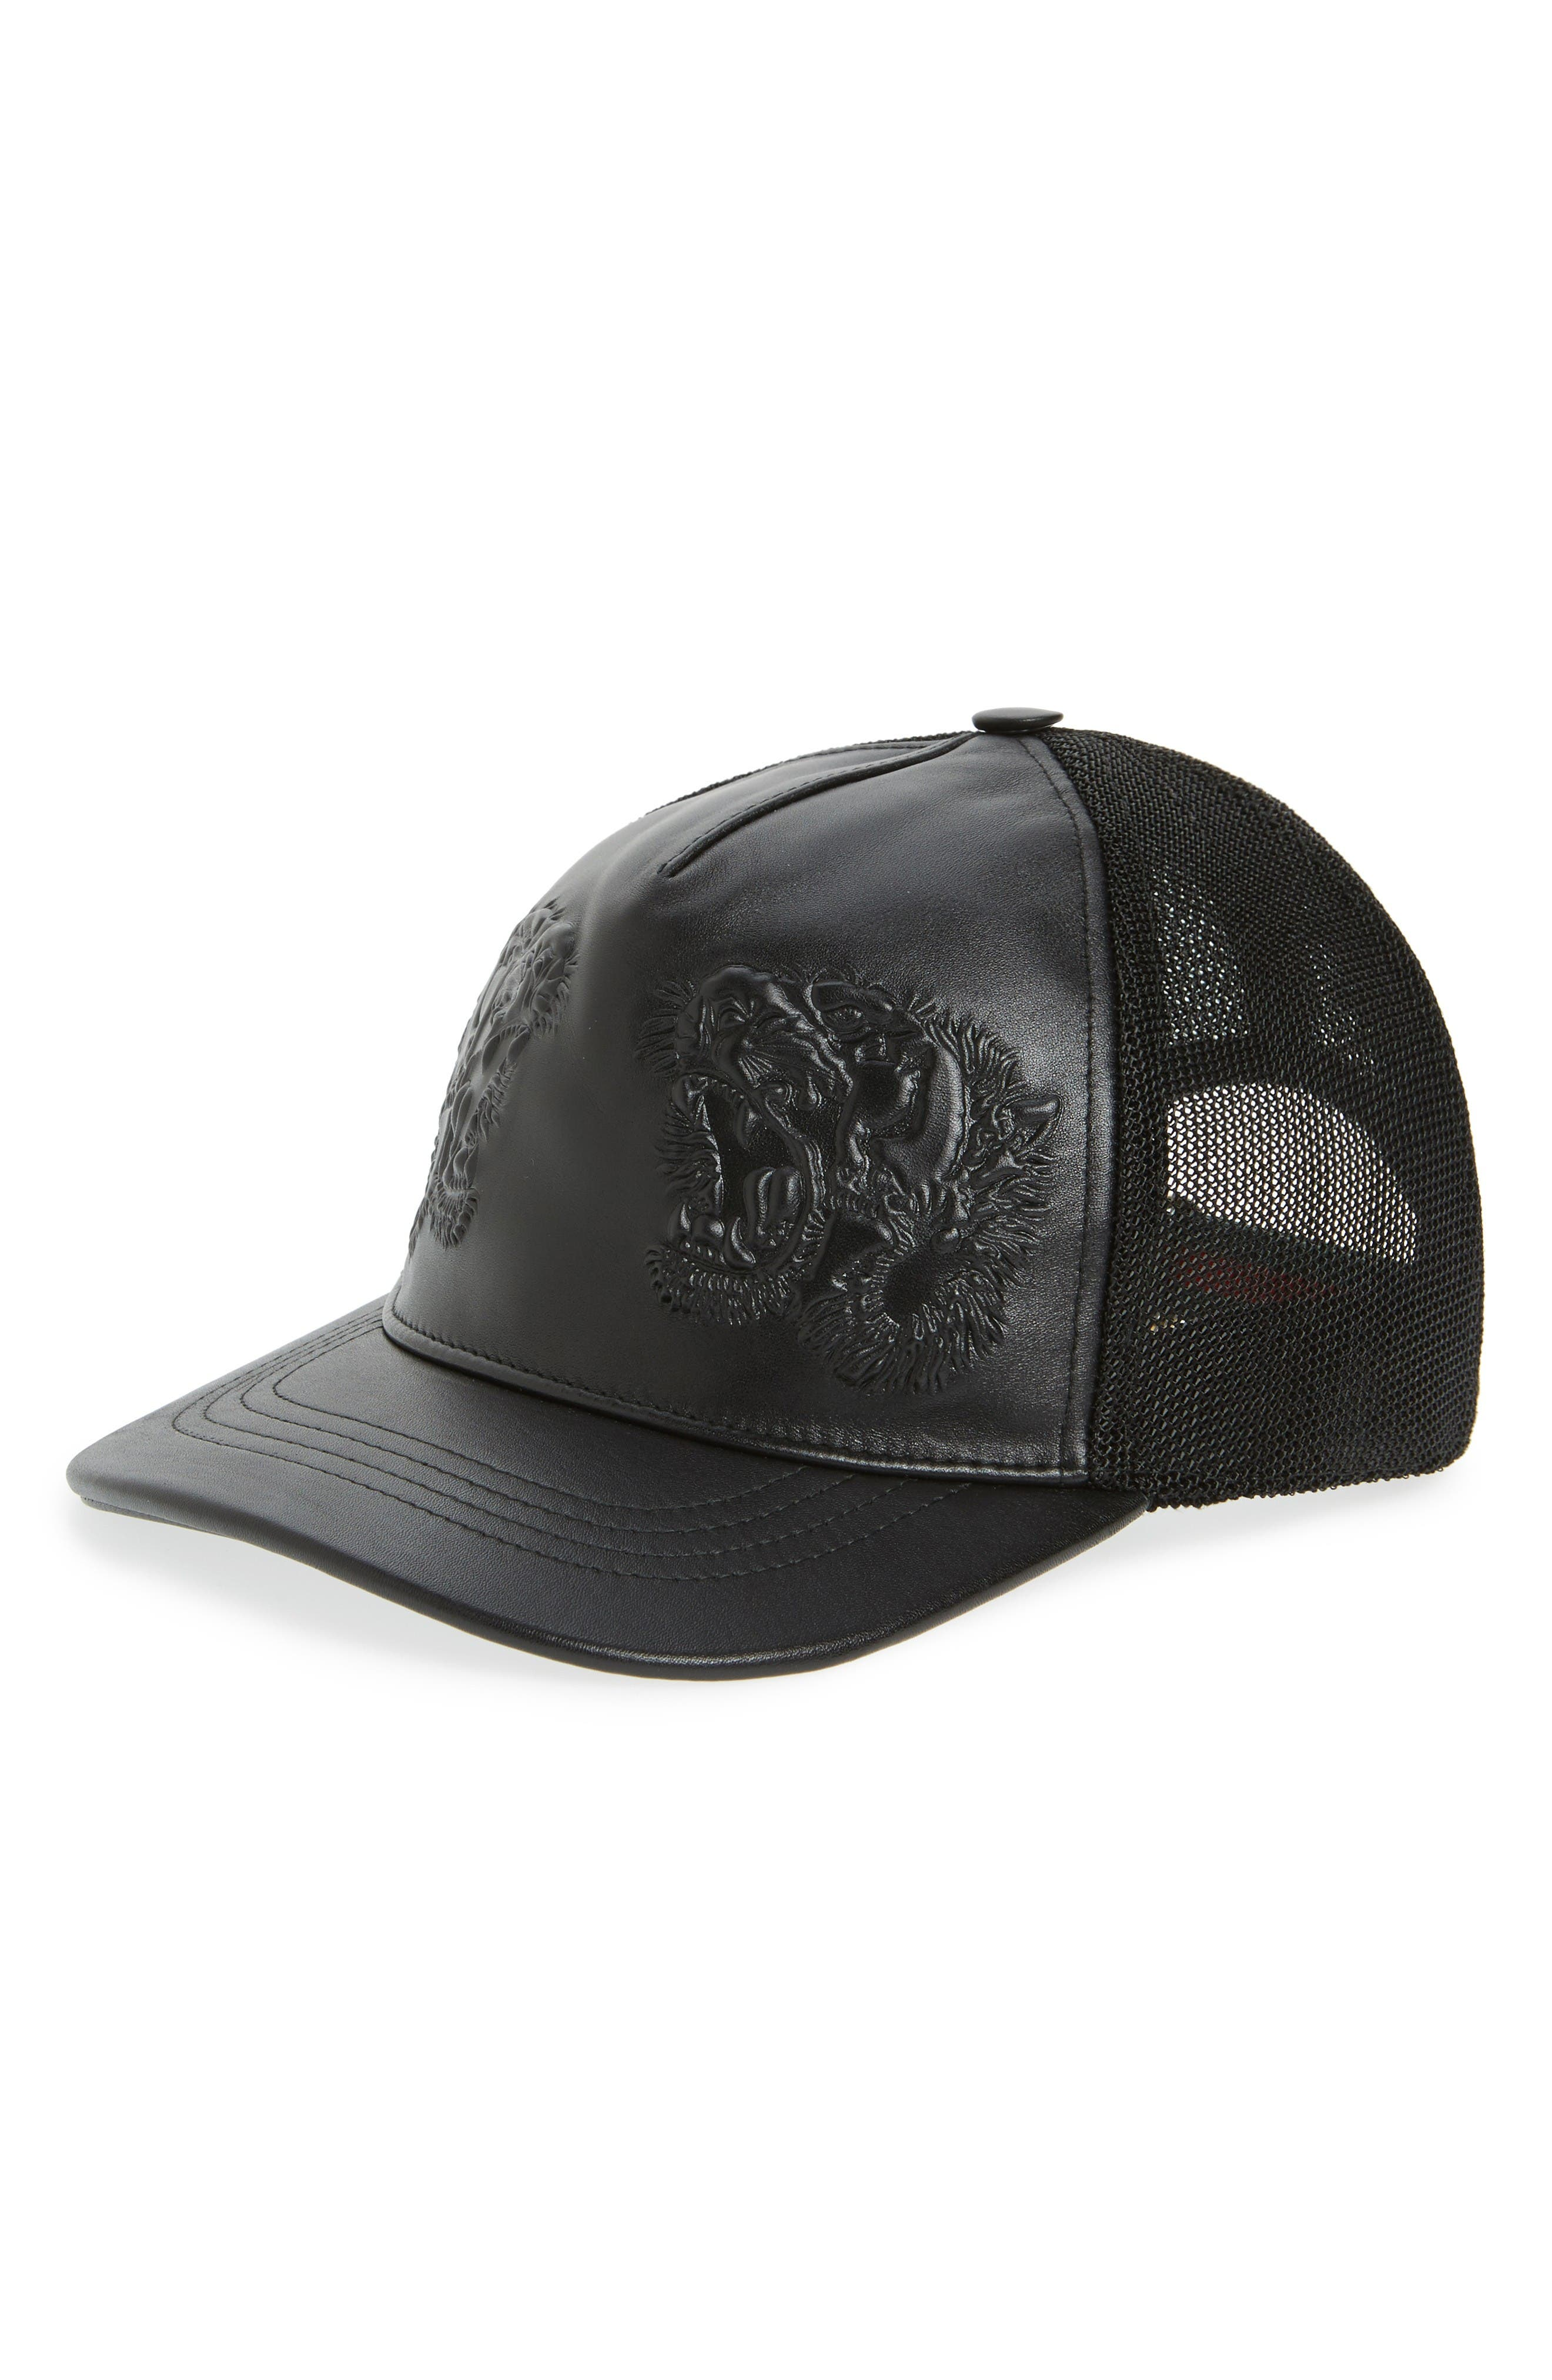 Alternate Image 1 Selected - Gucci Tiger Leather Baseball Cap